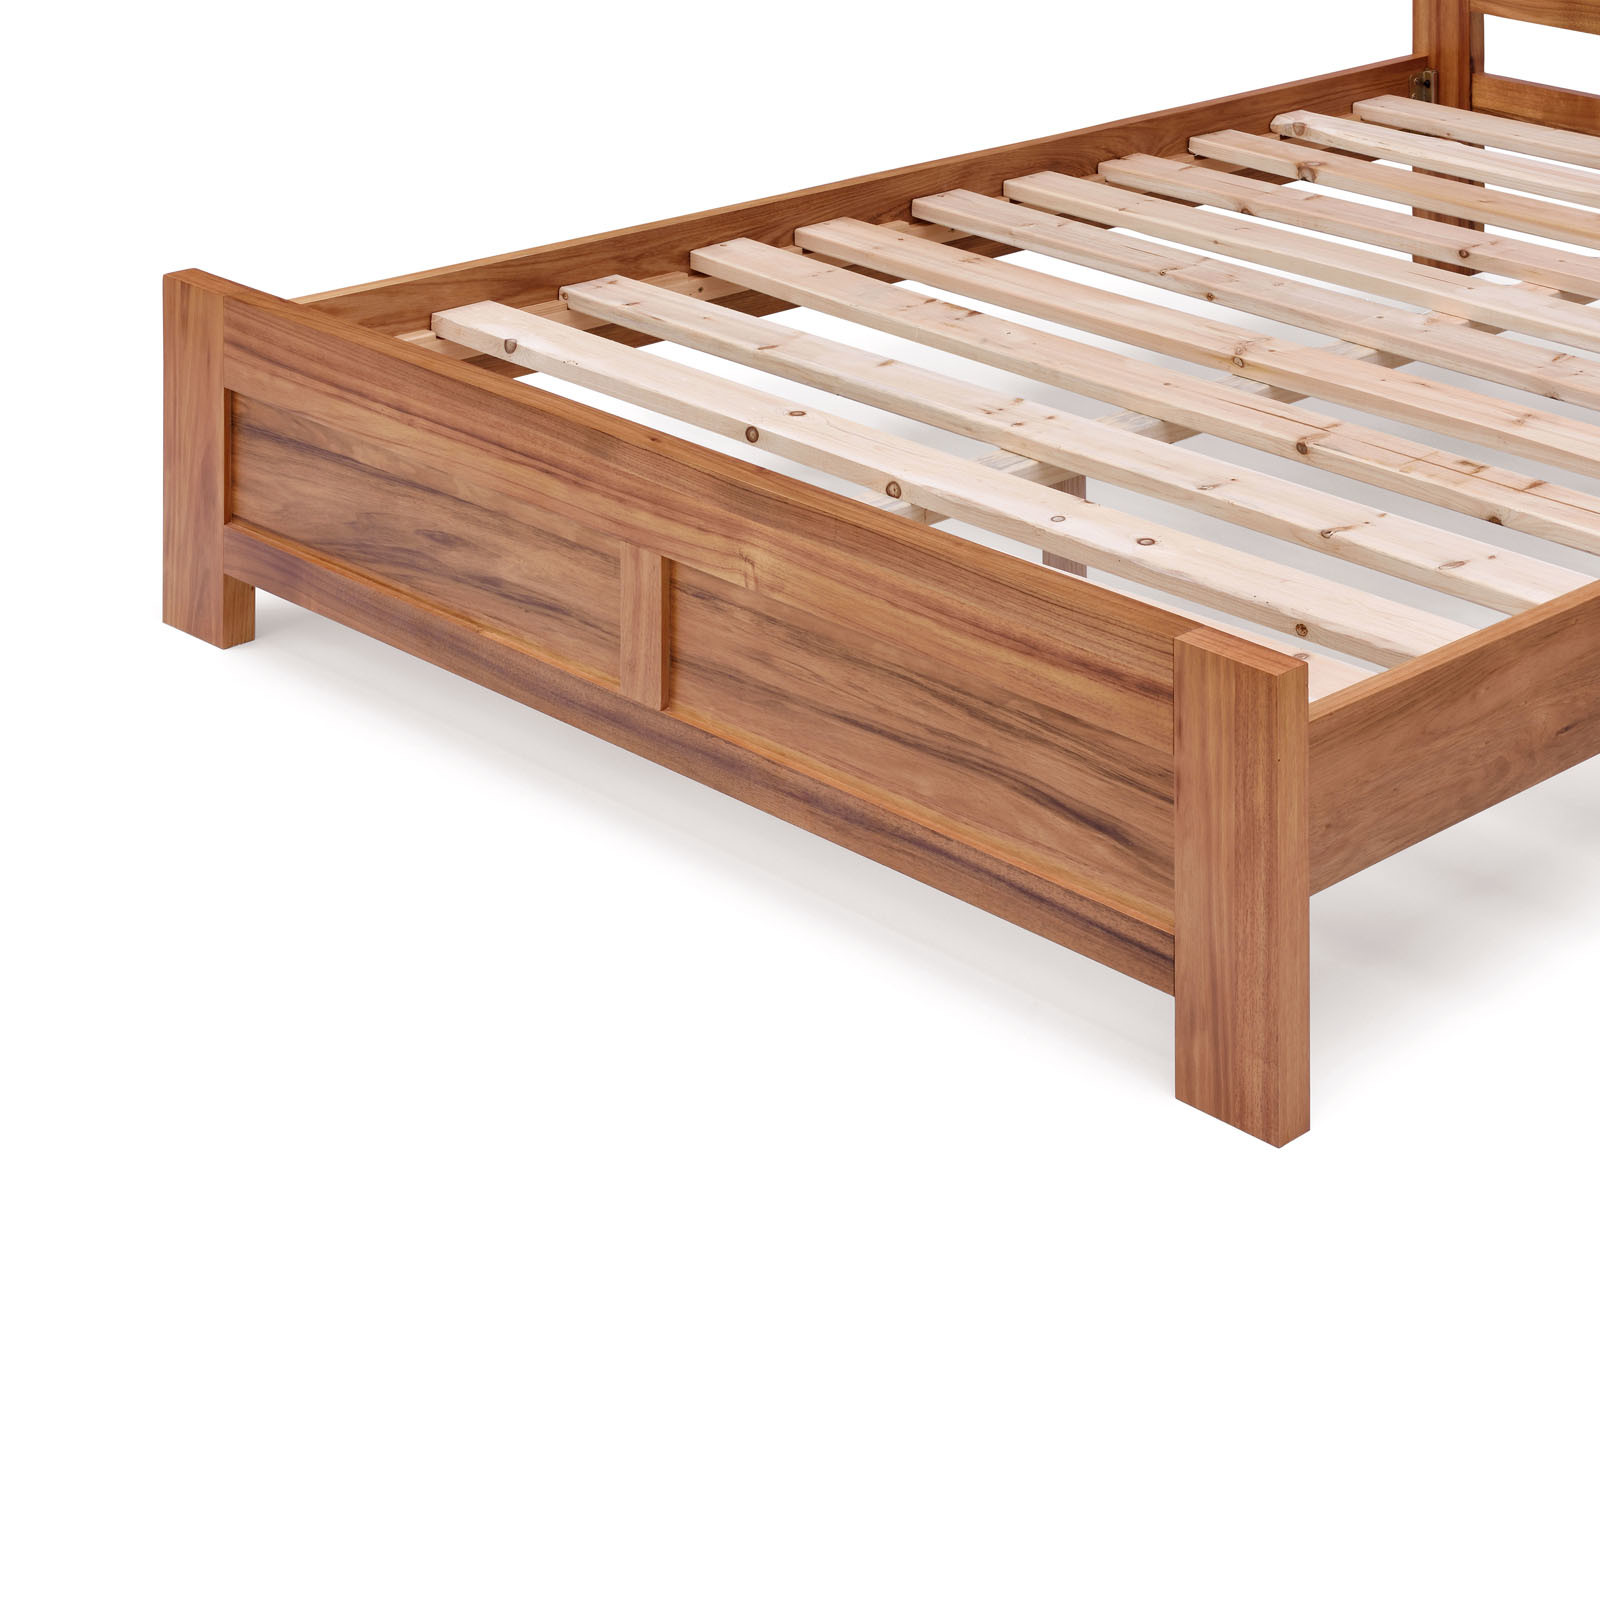 New seattle bed frame ebay for Furniture pick up seattle